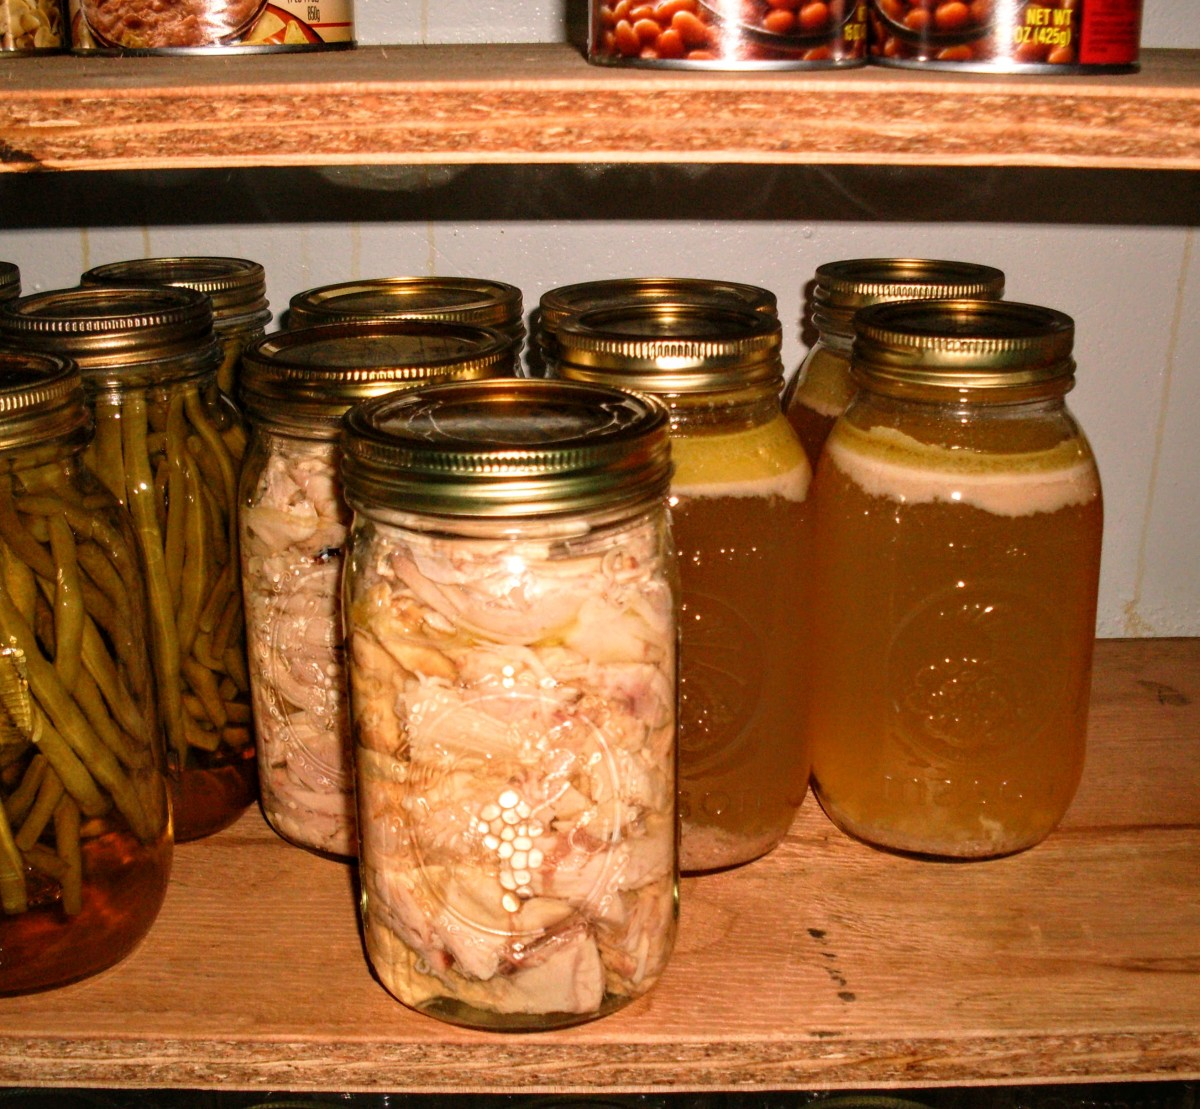 Chicken chunks and broth neatly canned, next to green bean pickles. These items look to me like the beginnings of a nice meal. This broth was not skimmed, and it came from a very heavy breed of chicken!